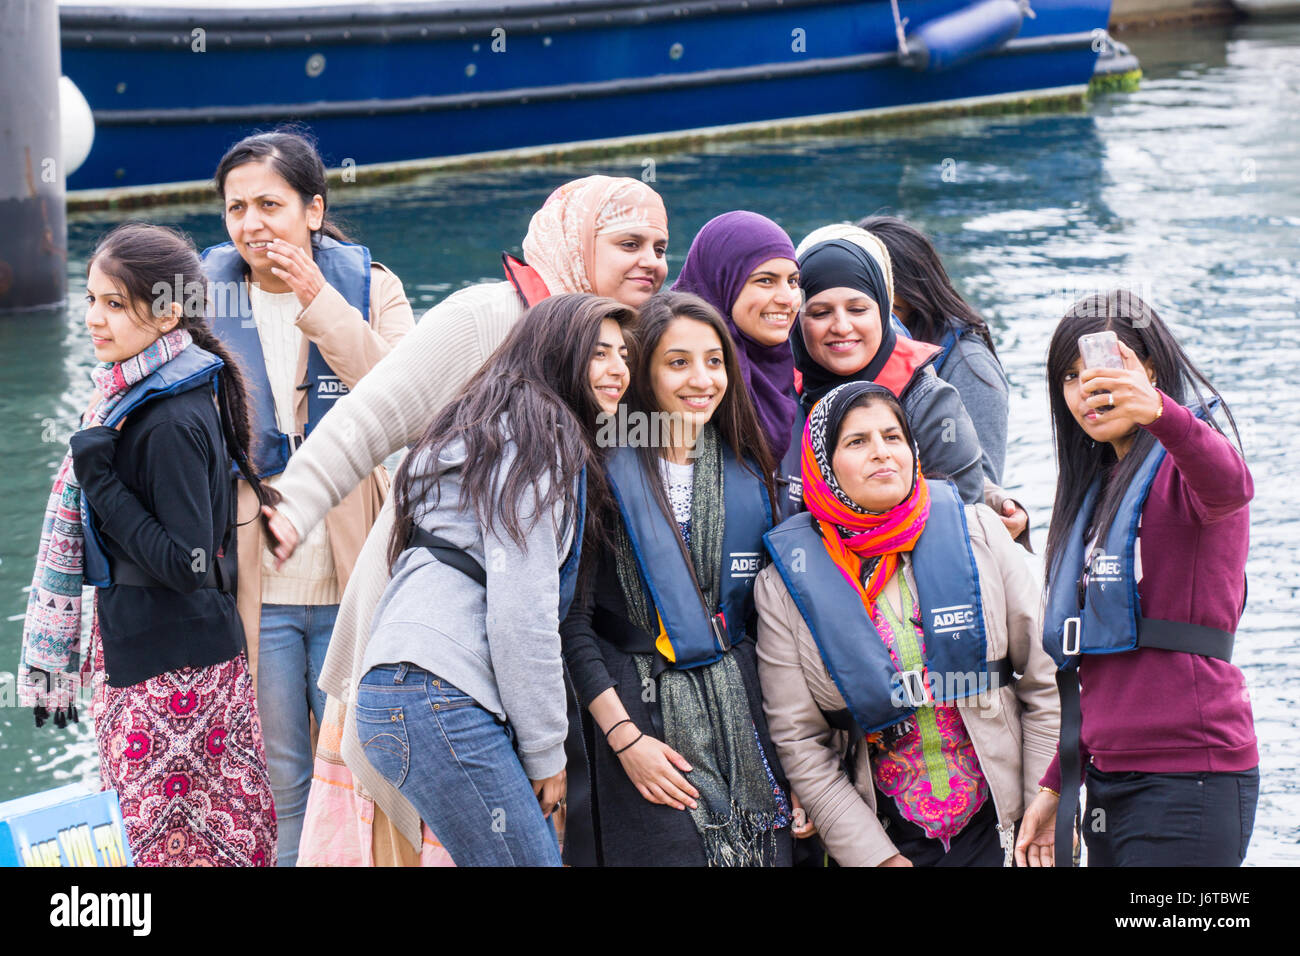 Group of women wearing life vests taking a selfie on their phone before going for a boat cruise at Scarborough, Stock Photo